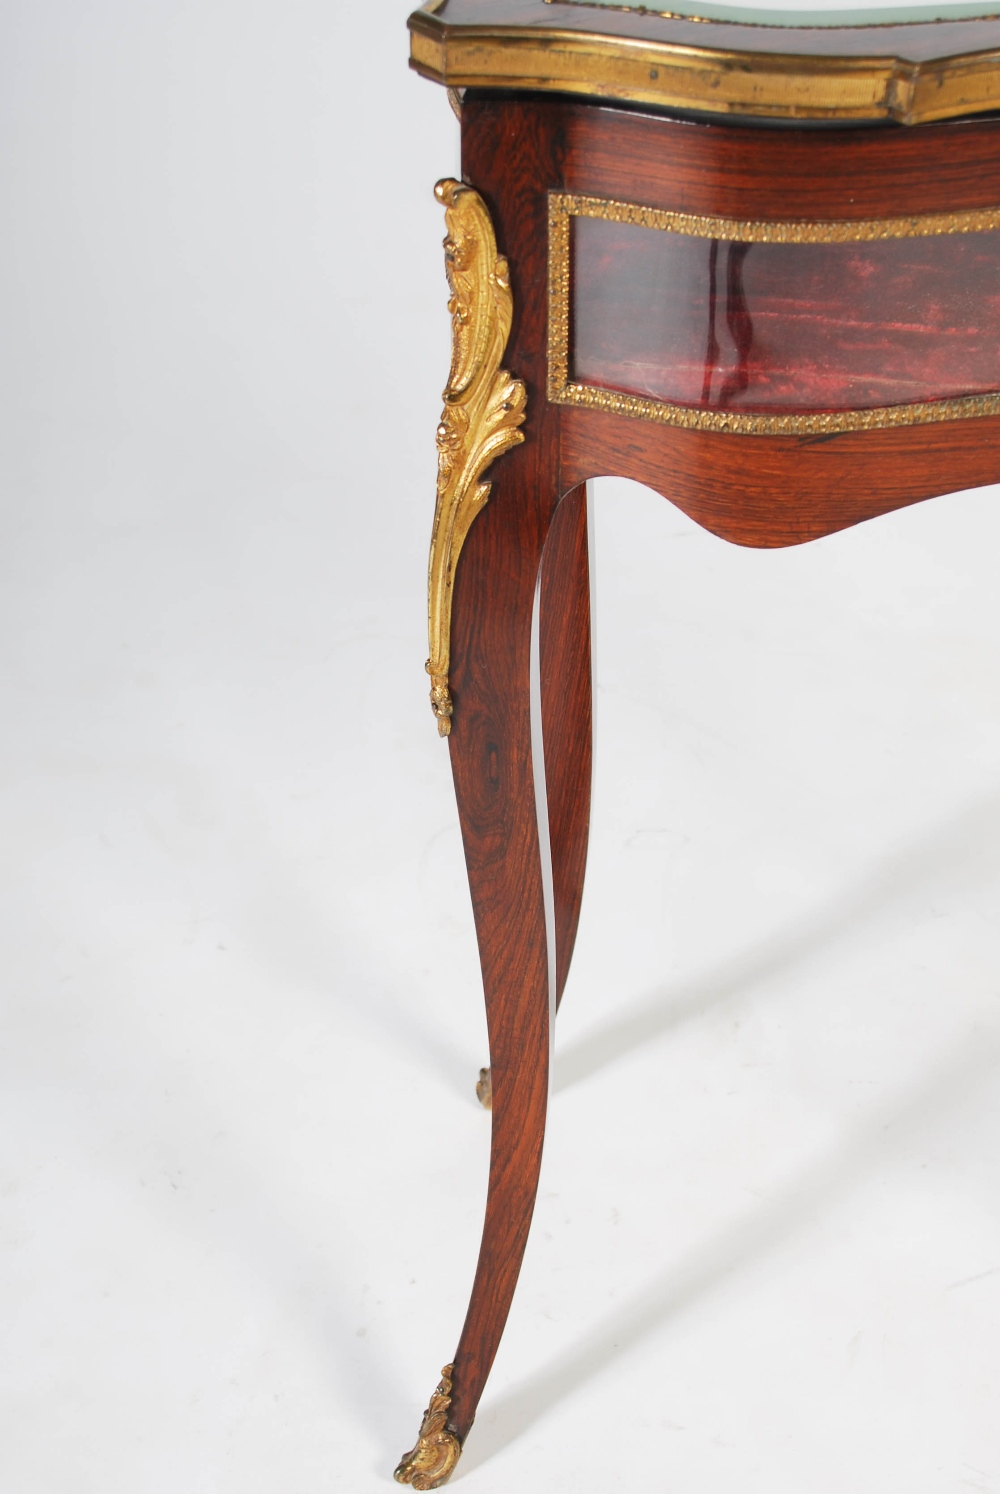 Lot 87 - A late 19th century rosewood and ormolu mounted kidney shaped bijouterie table, the hinged top